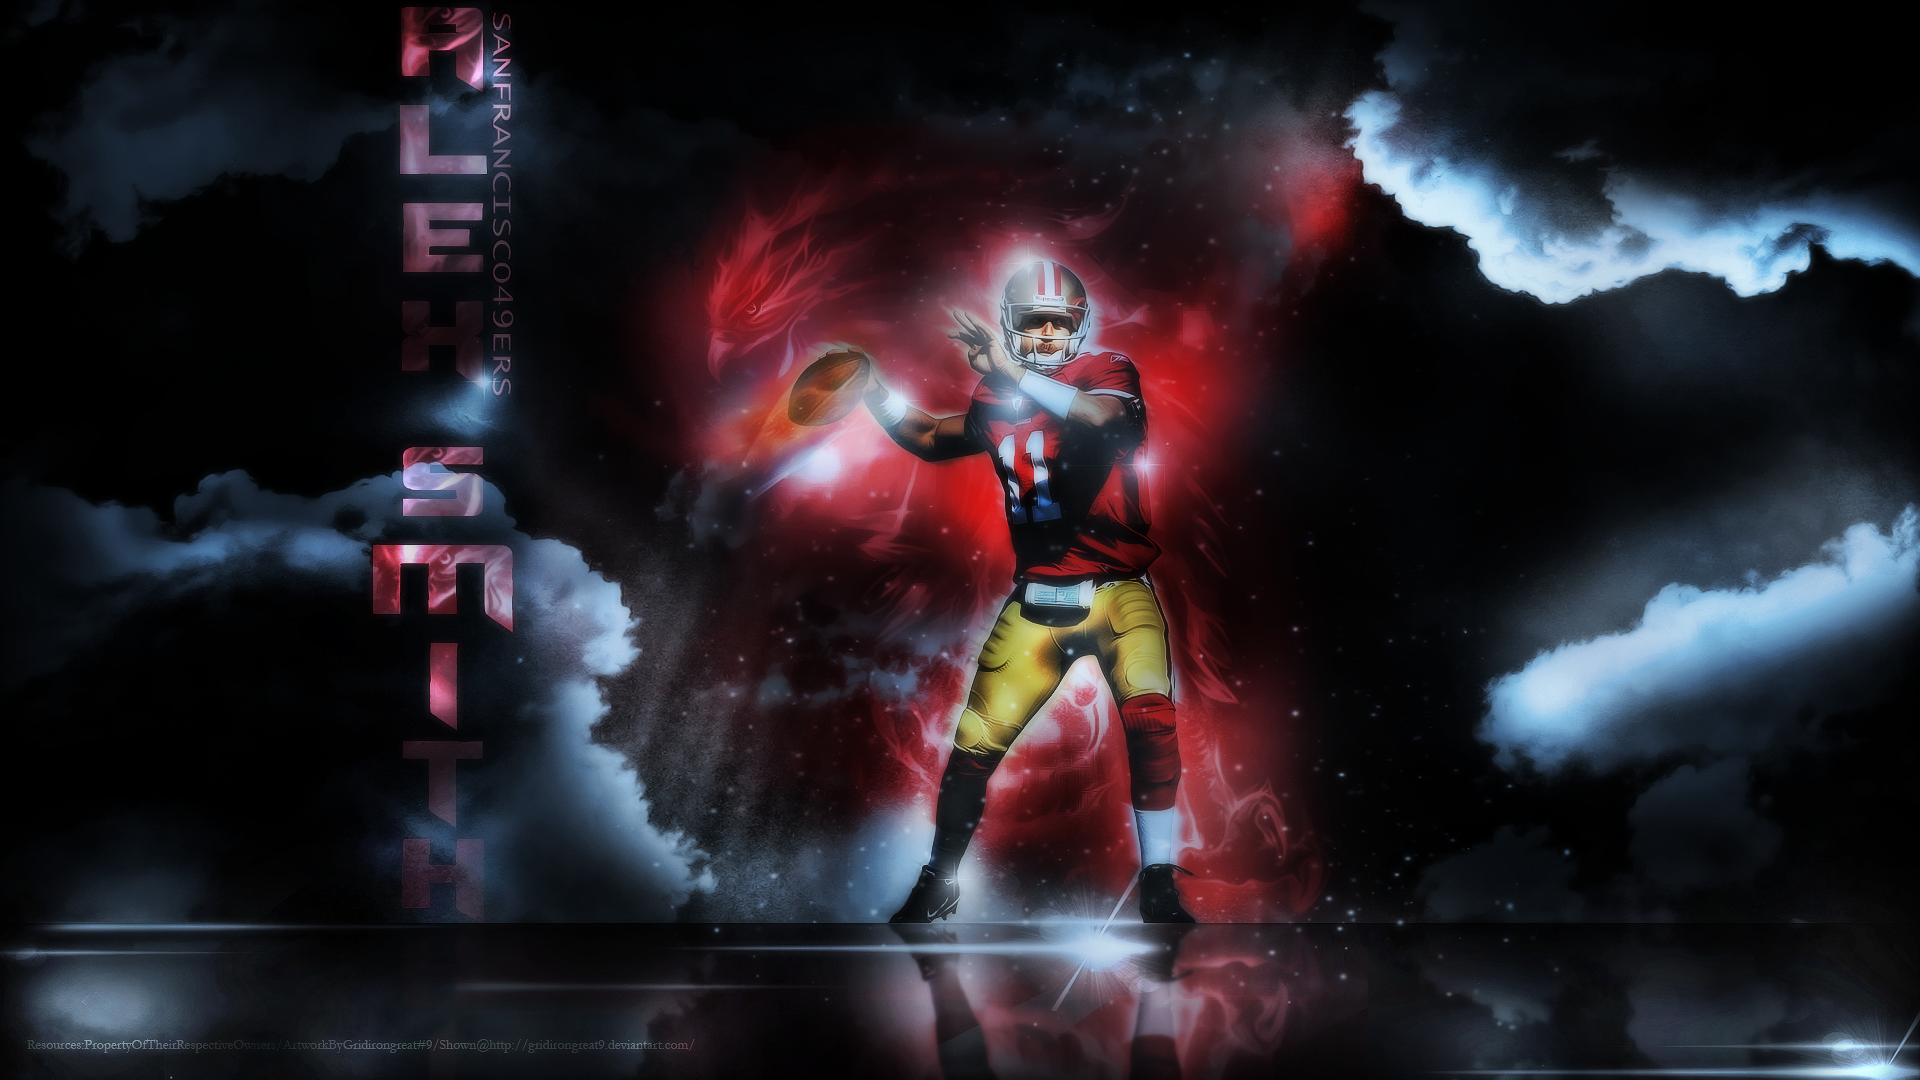 49ers Alex Smith Wallpaper in HD Wide High Definition Wallpapers For 1920x1080